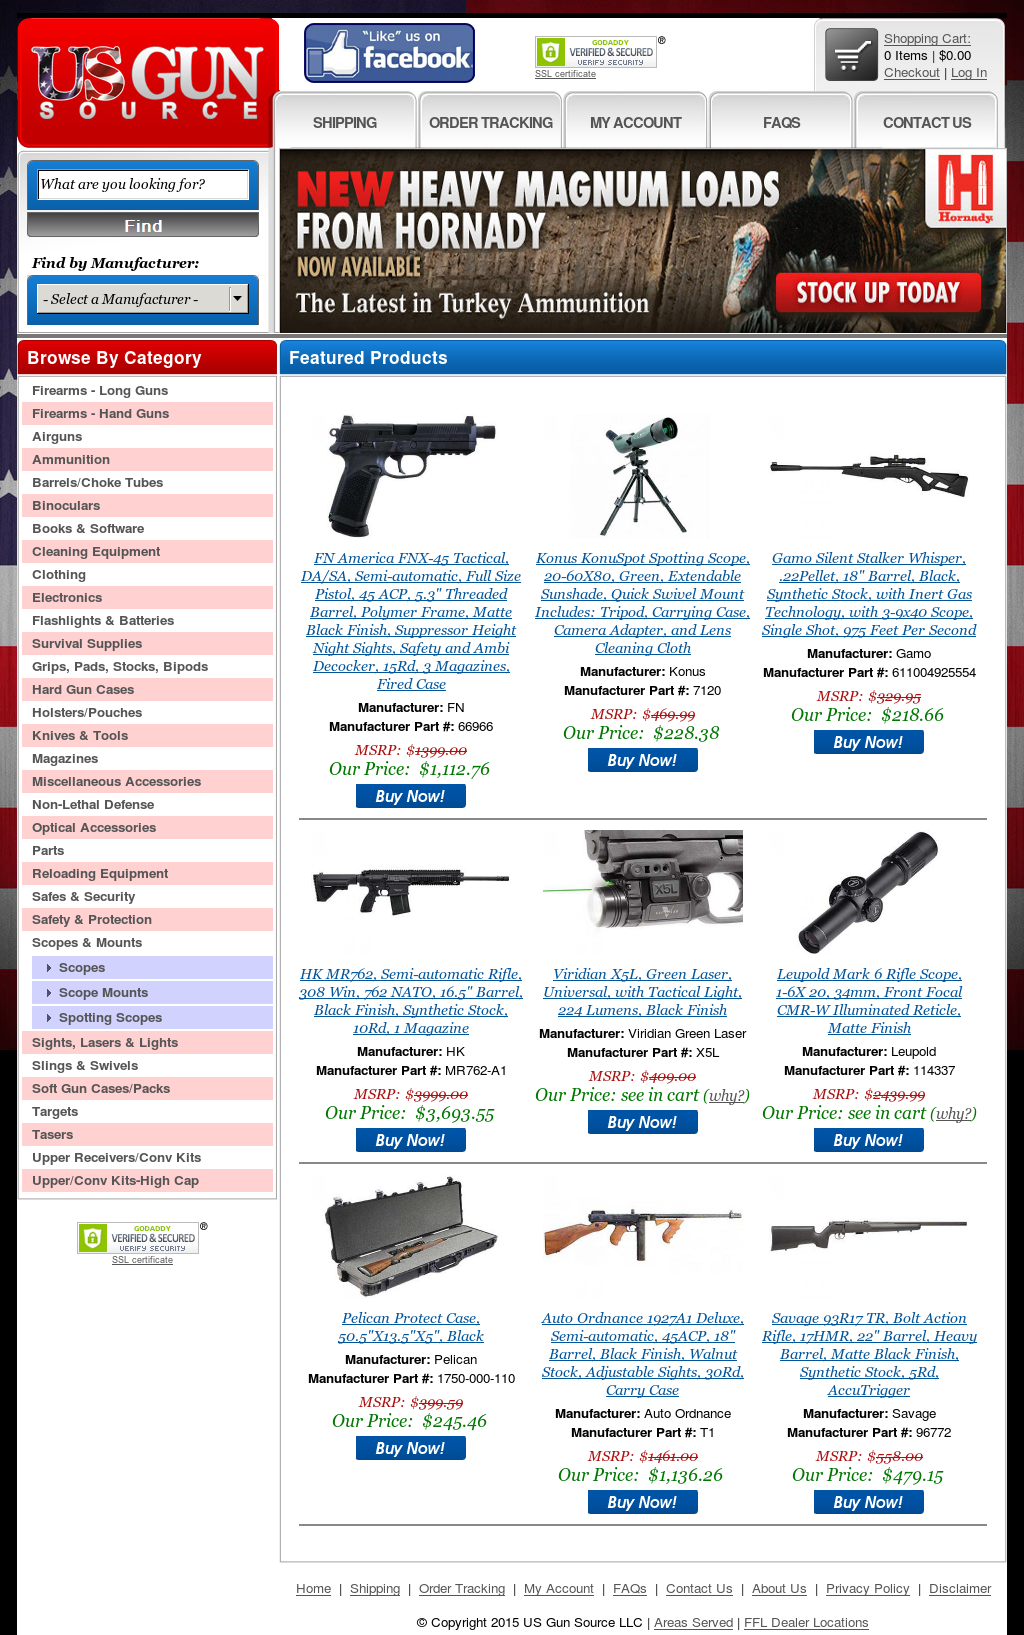 Us Gun Source Competitors, Revenue and Employees - Owler Company Profile